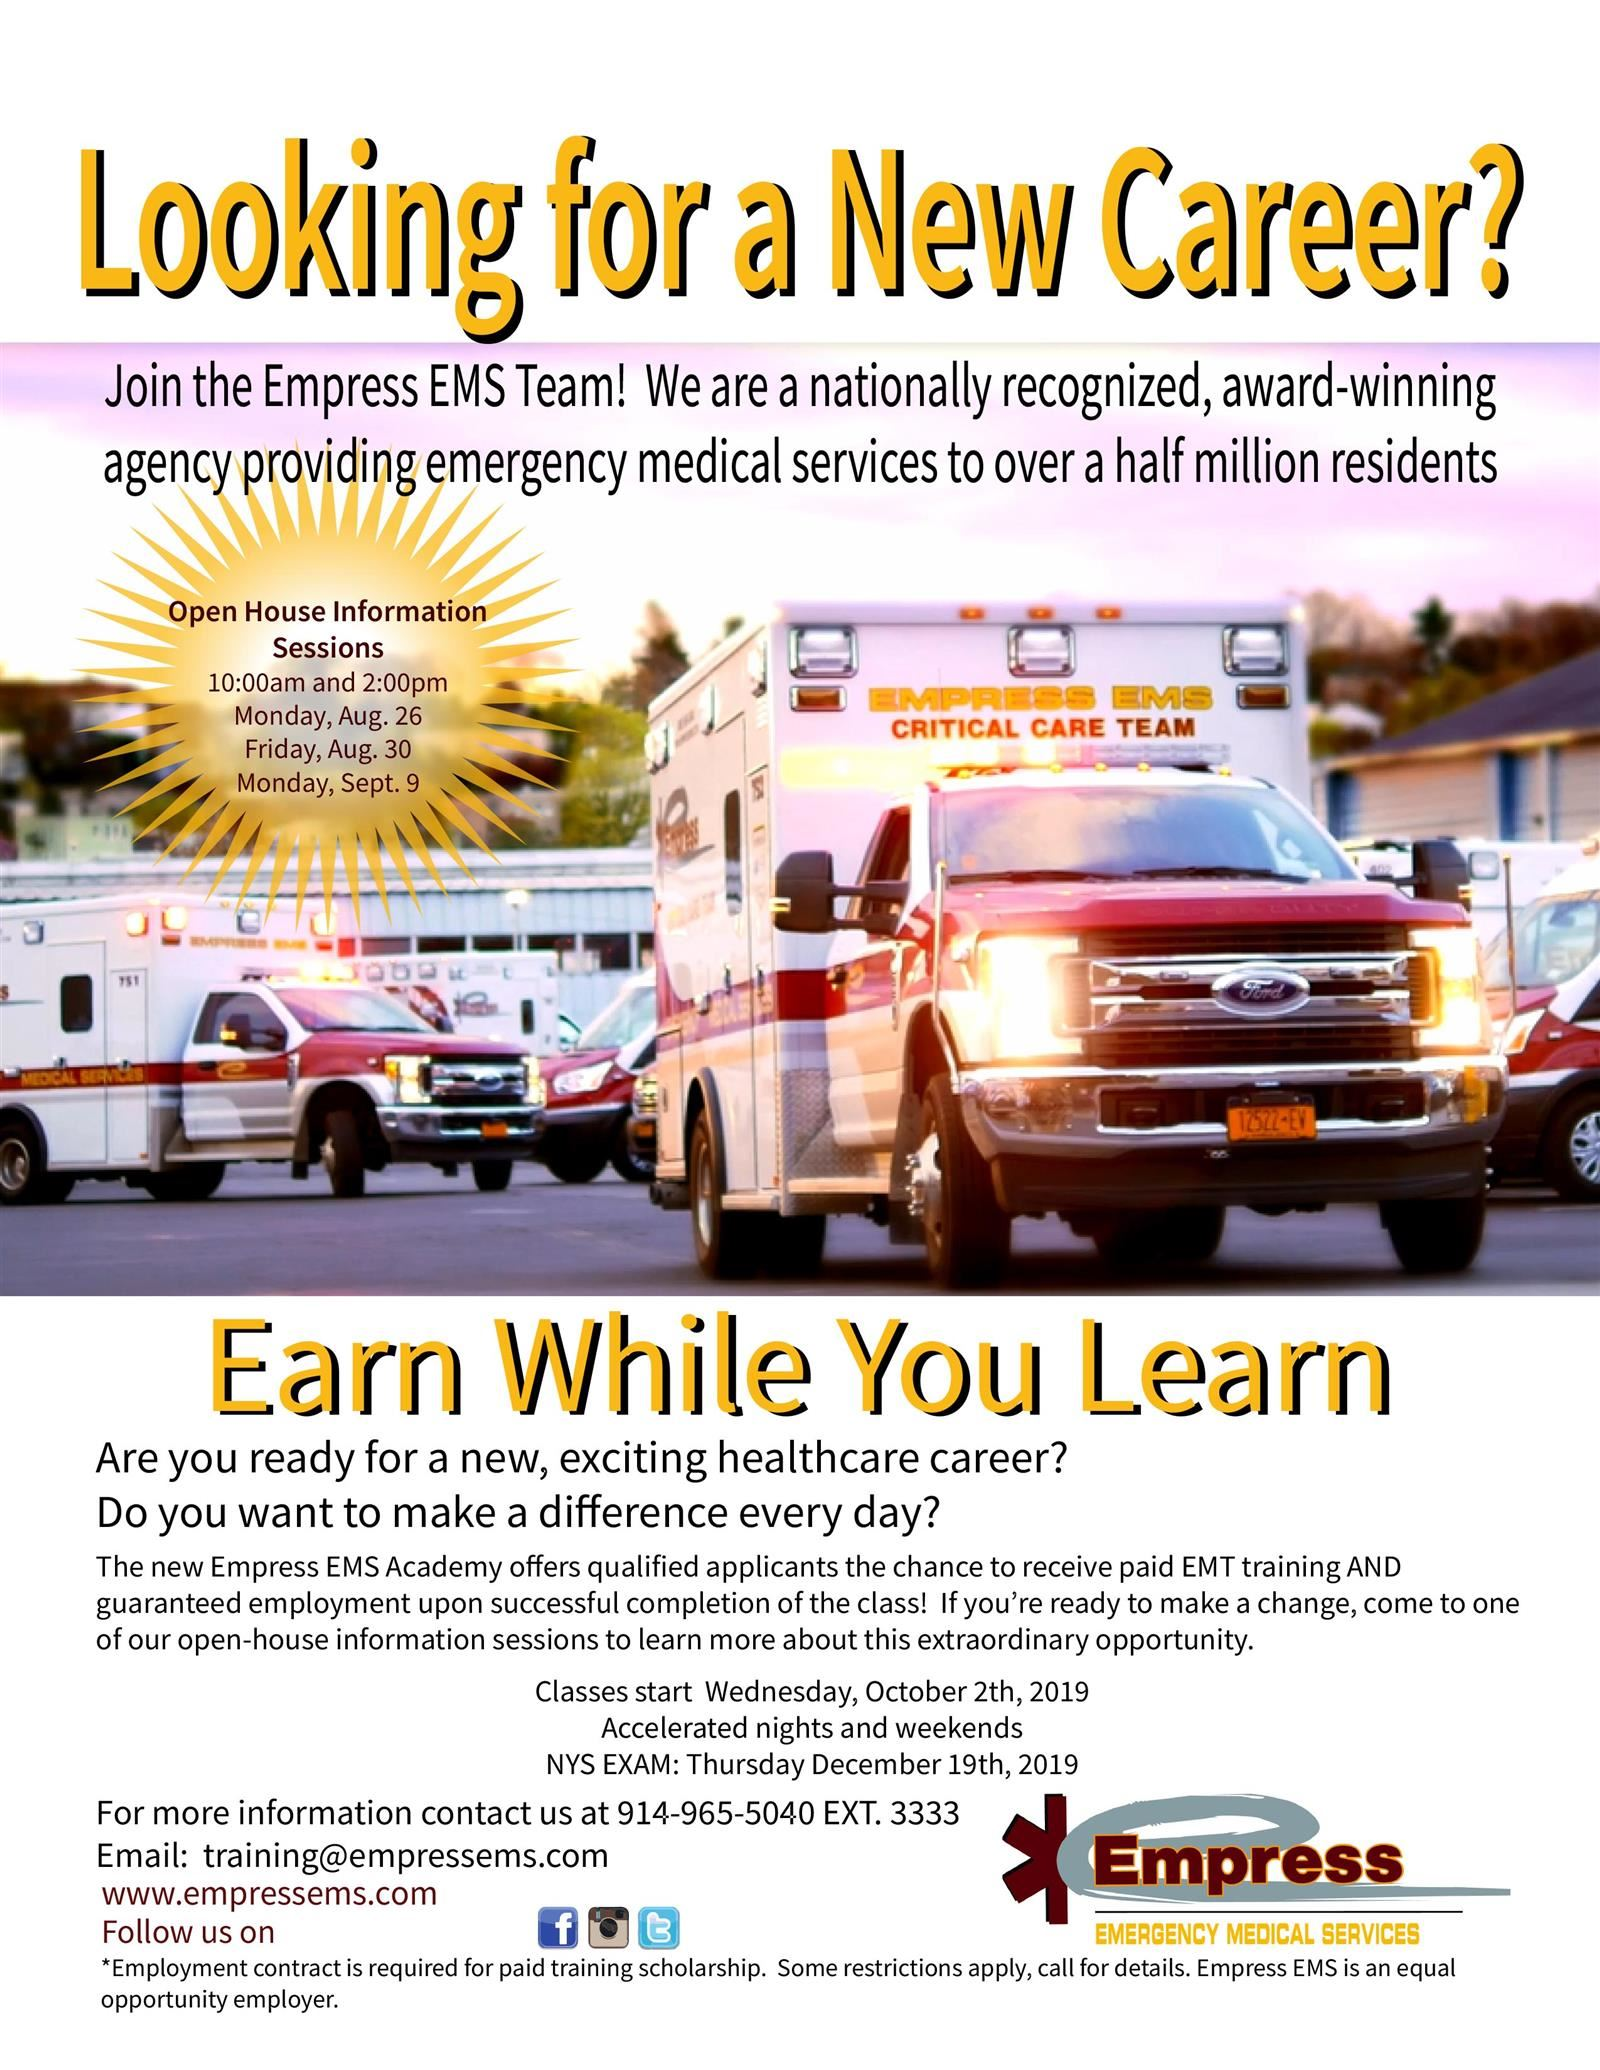 EMT Academy - Paid Training